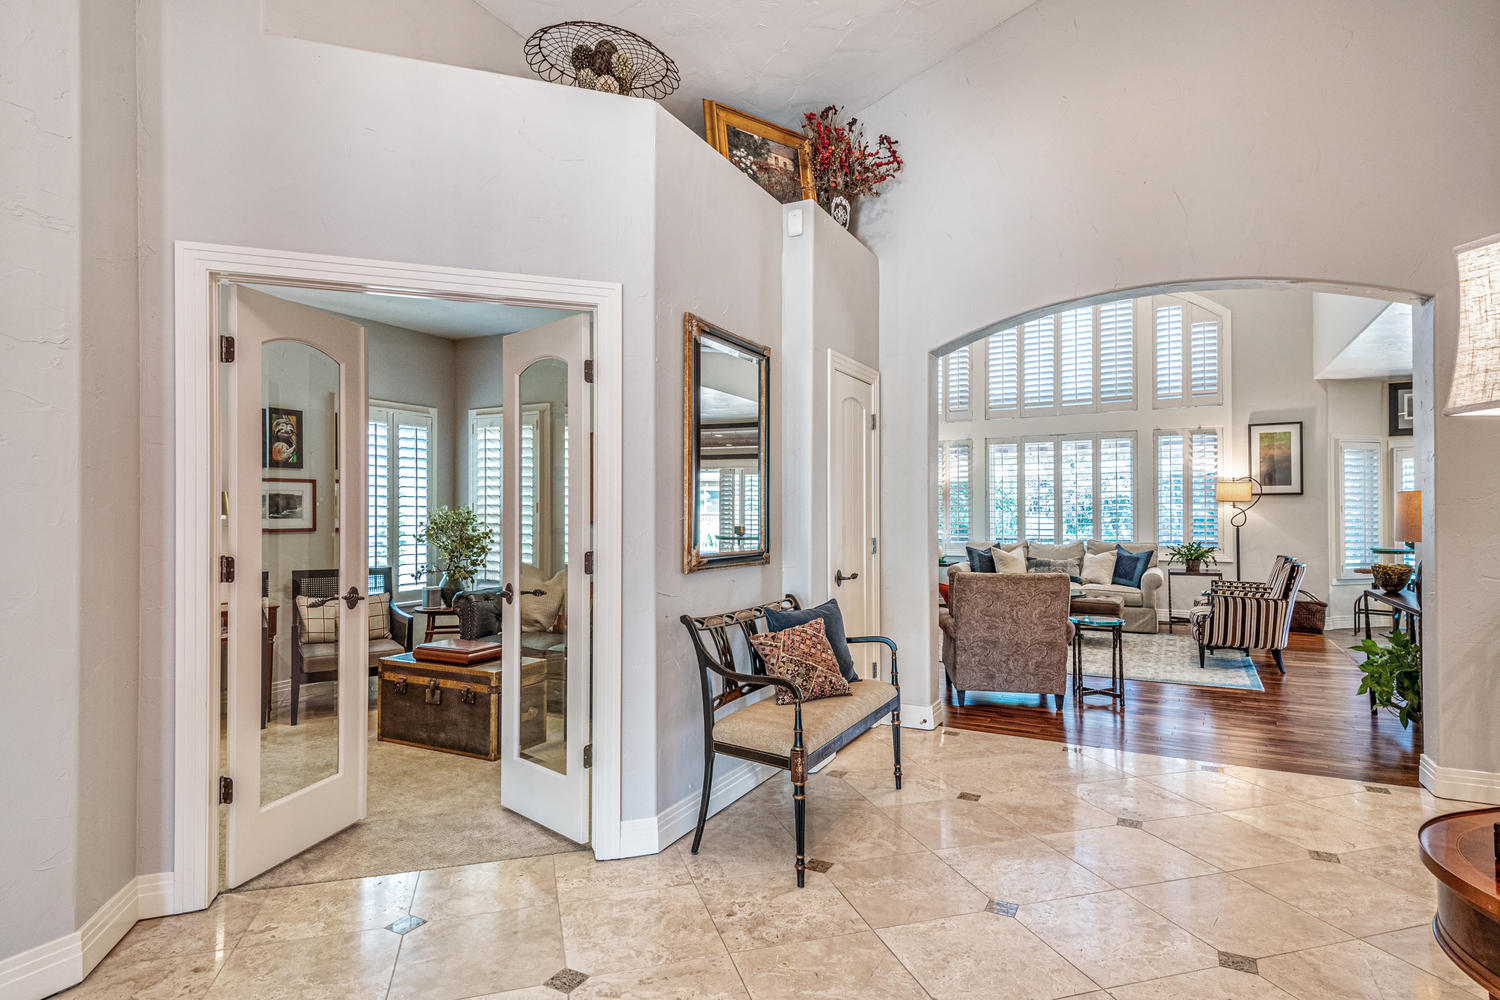 Private Study/Den with French Doors at Left